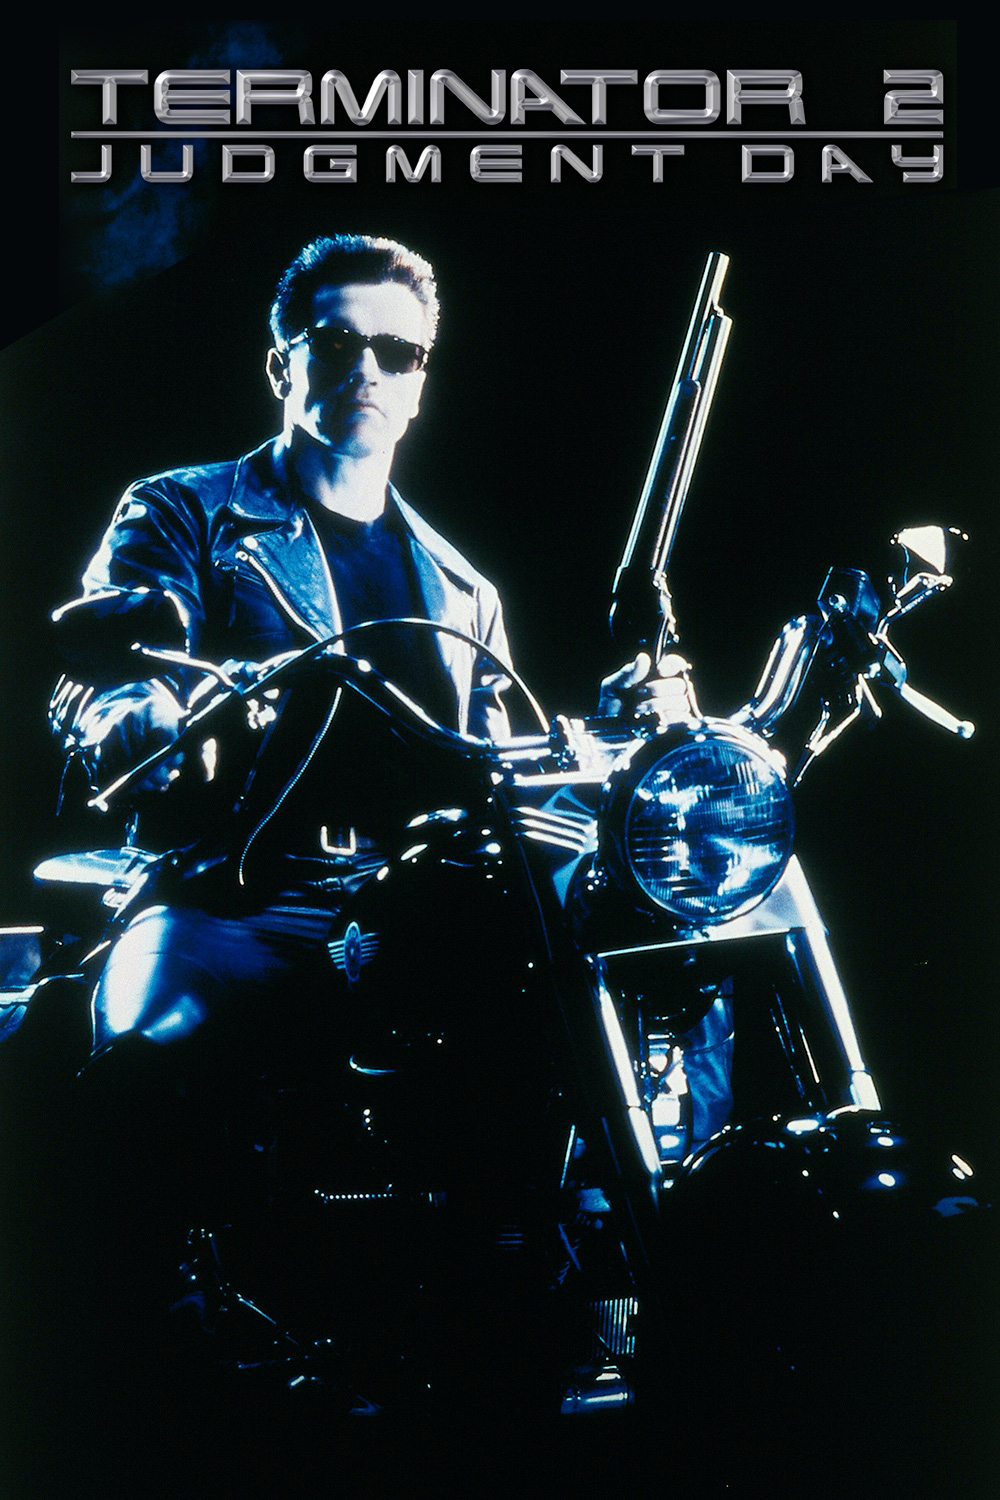 Terminator 2: Judgement Day DVD cover by Wario64I on ...  |The Terminator 2 Cover